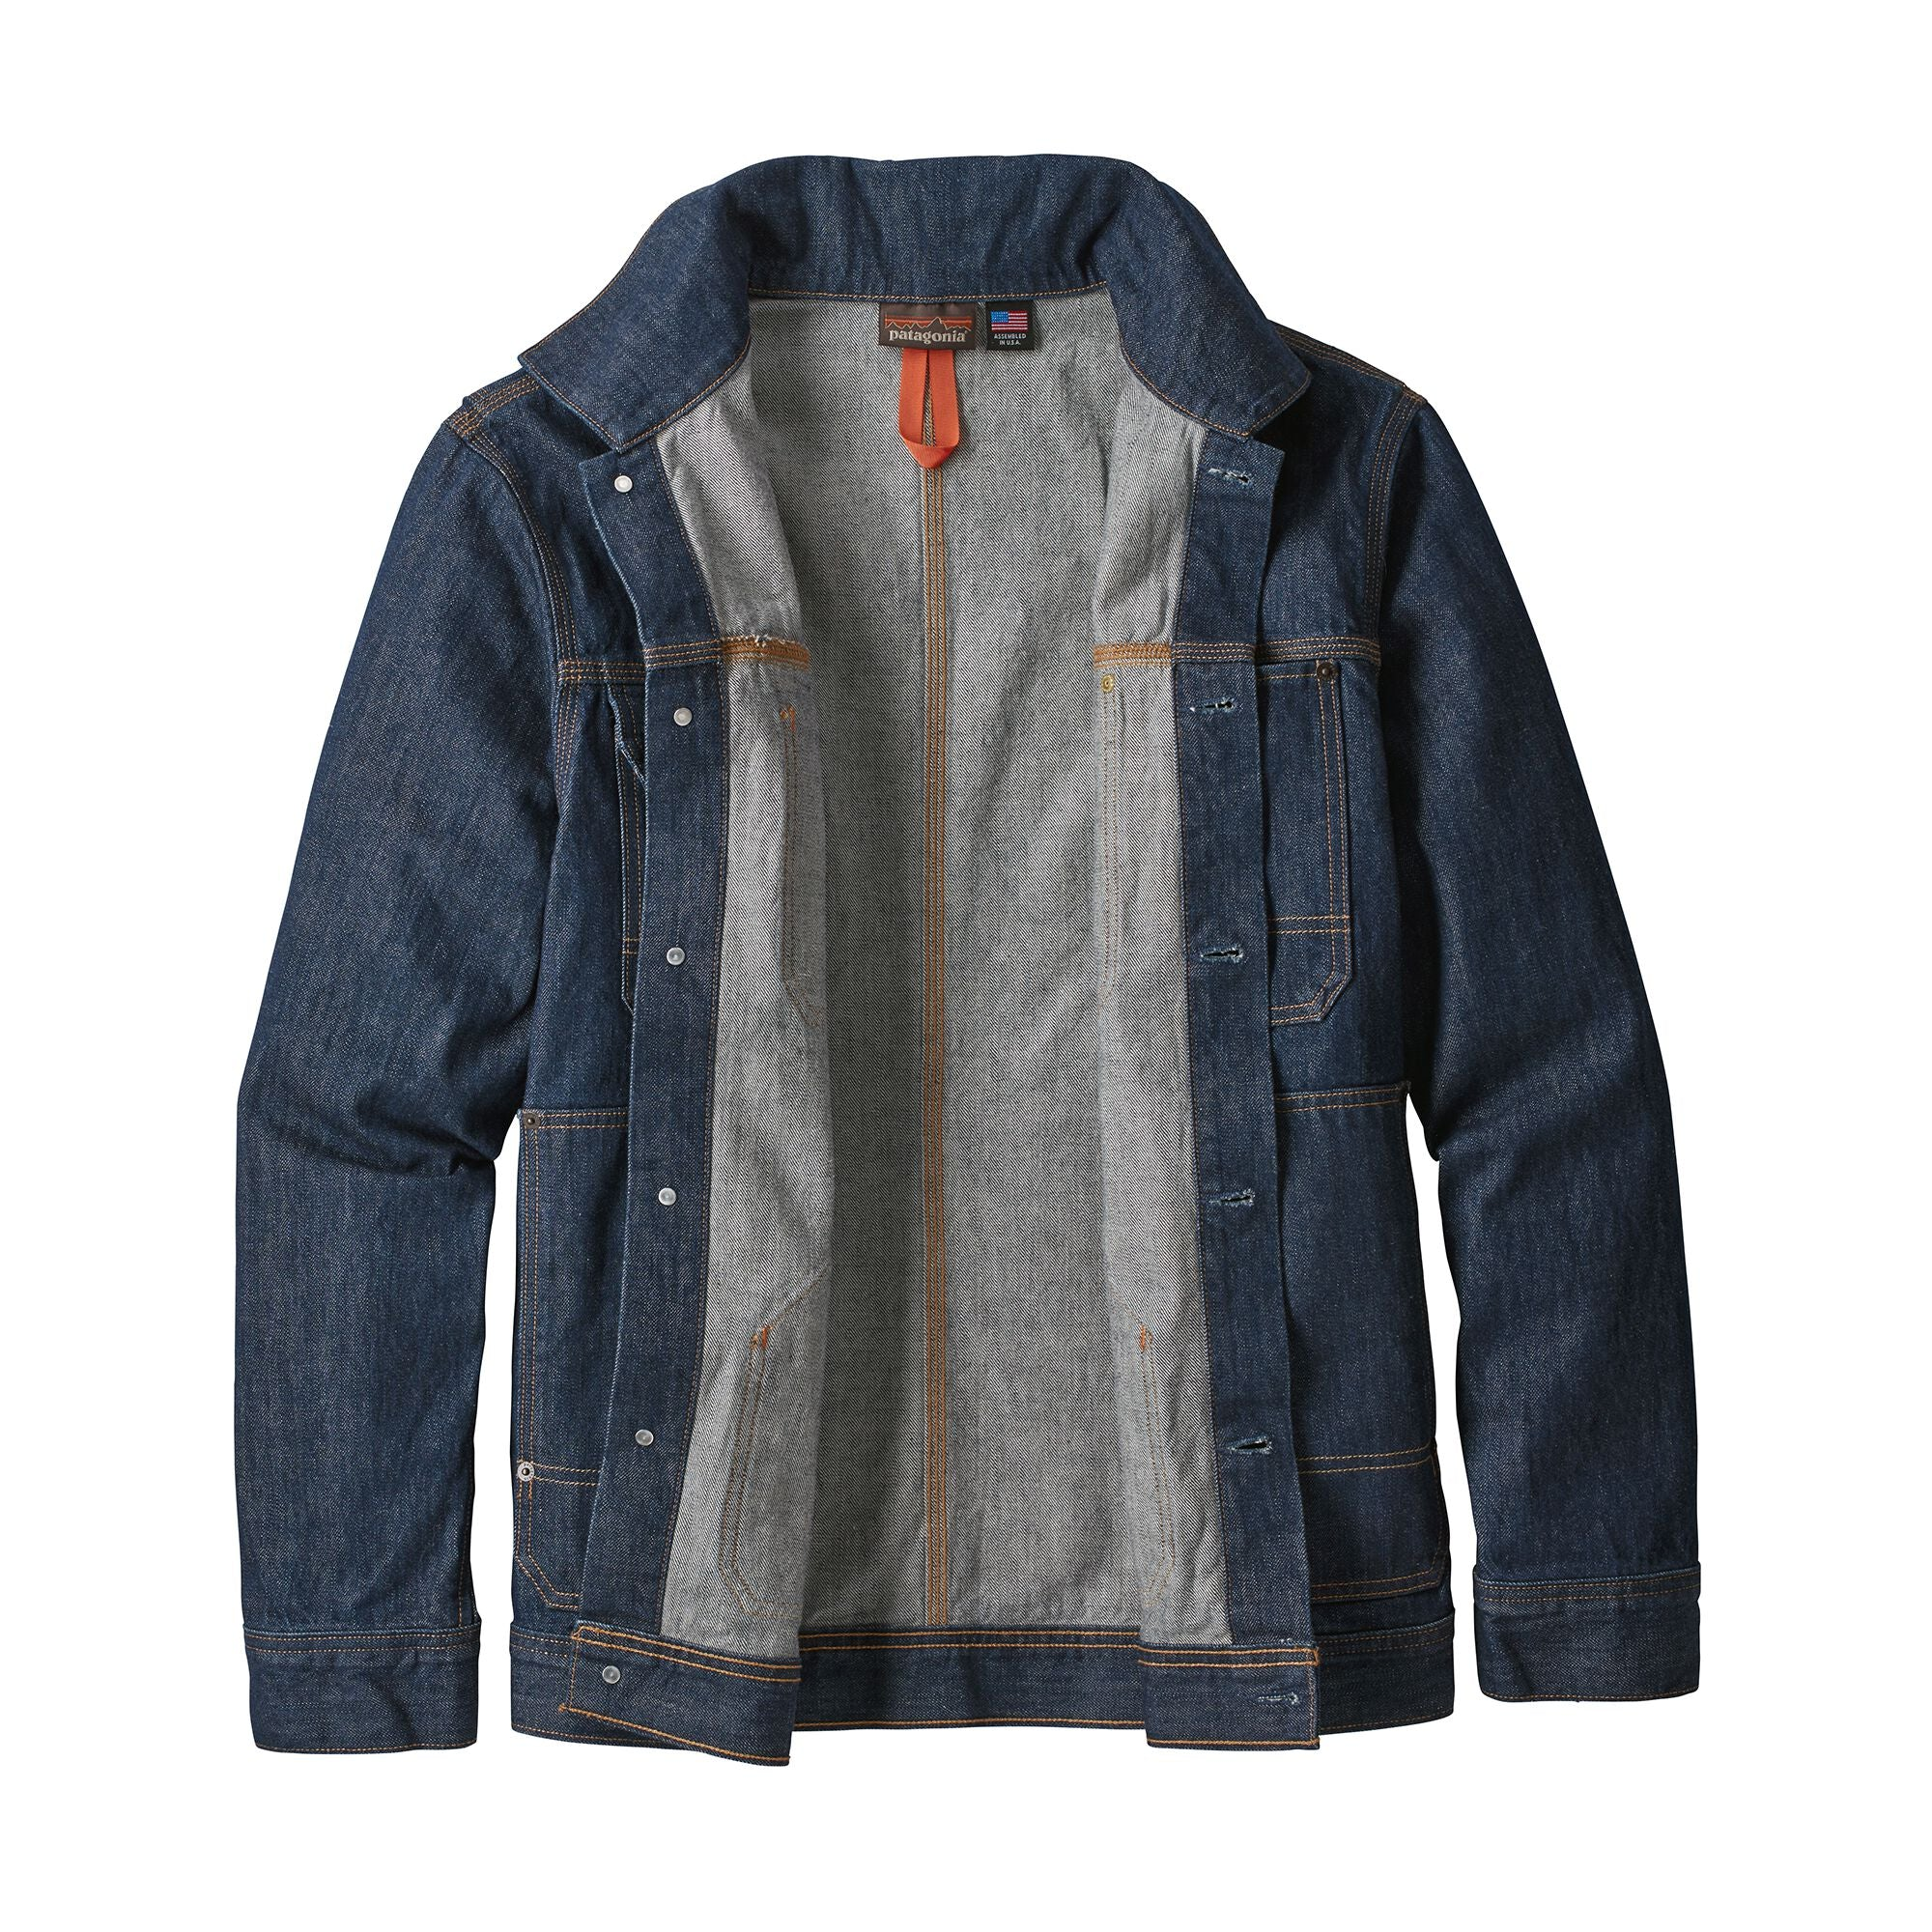 Chaqueta Hombre Steel Forge Denim Jacket Azul Patagonia